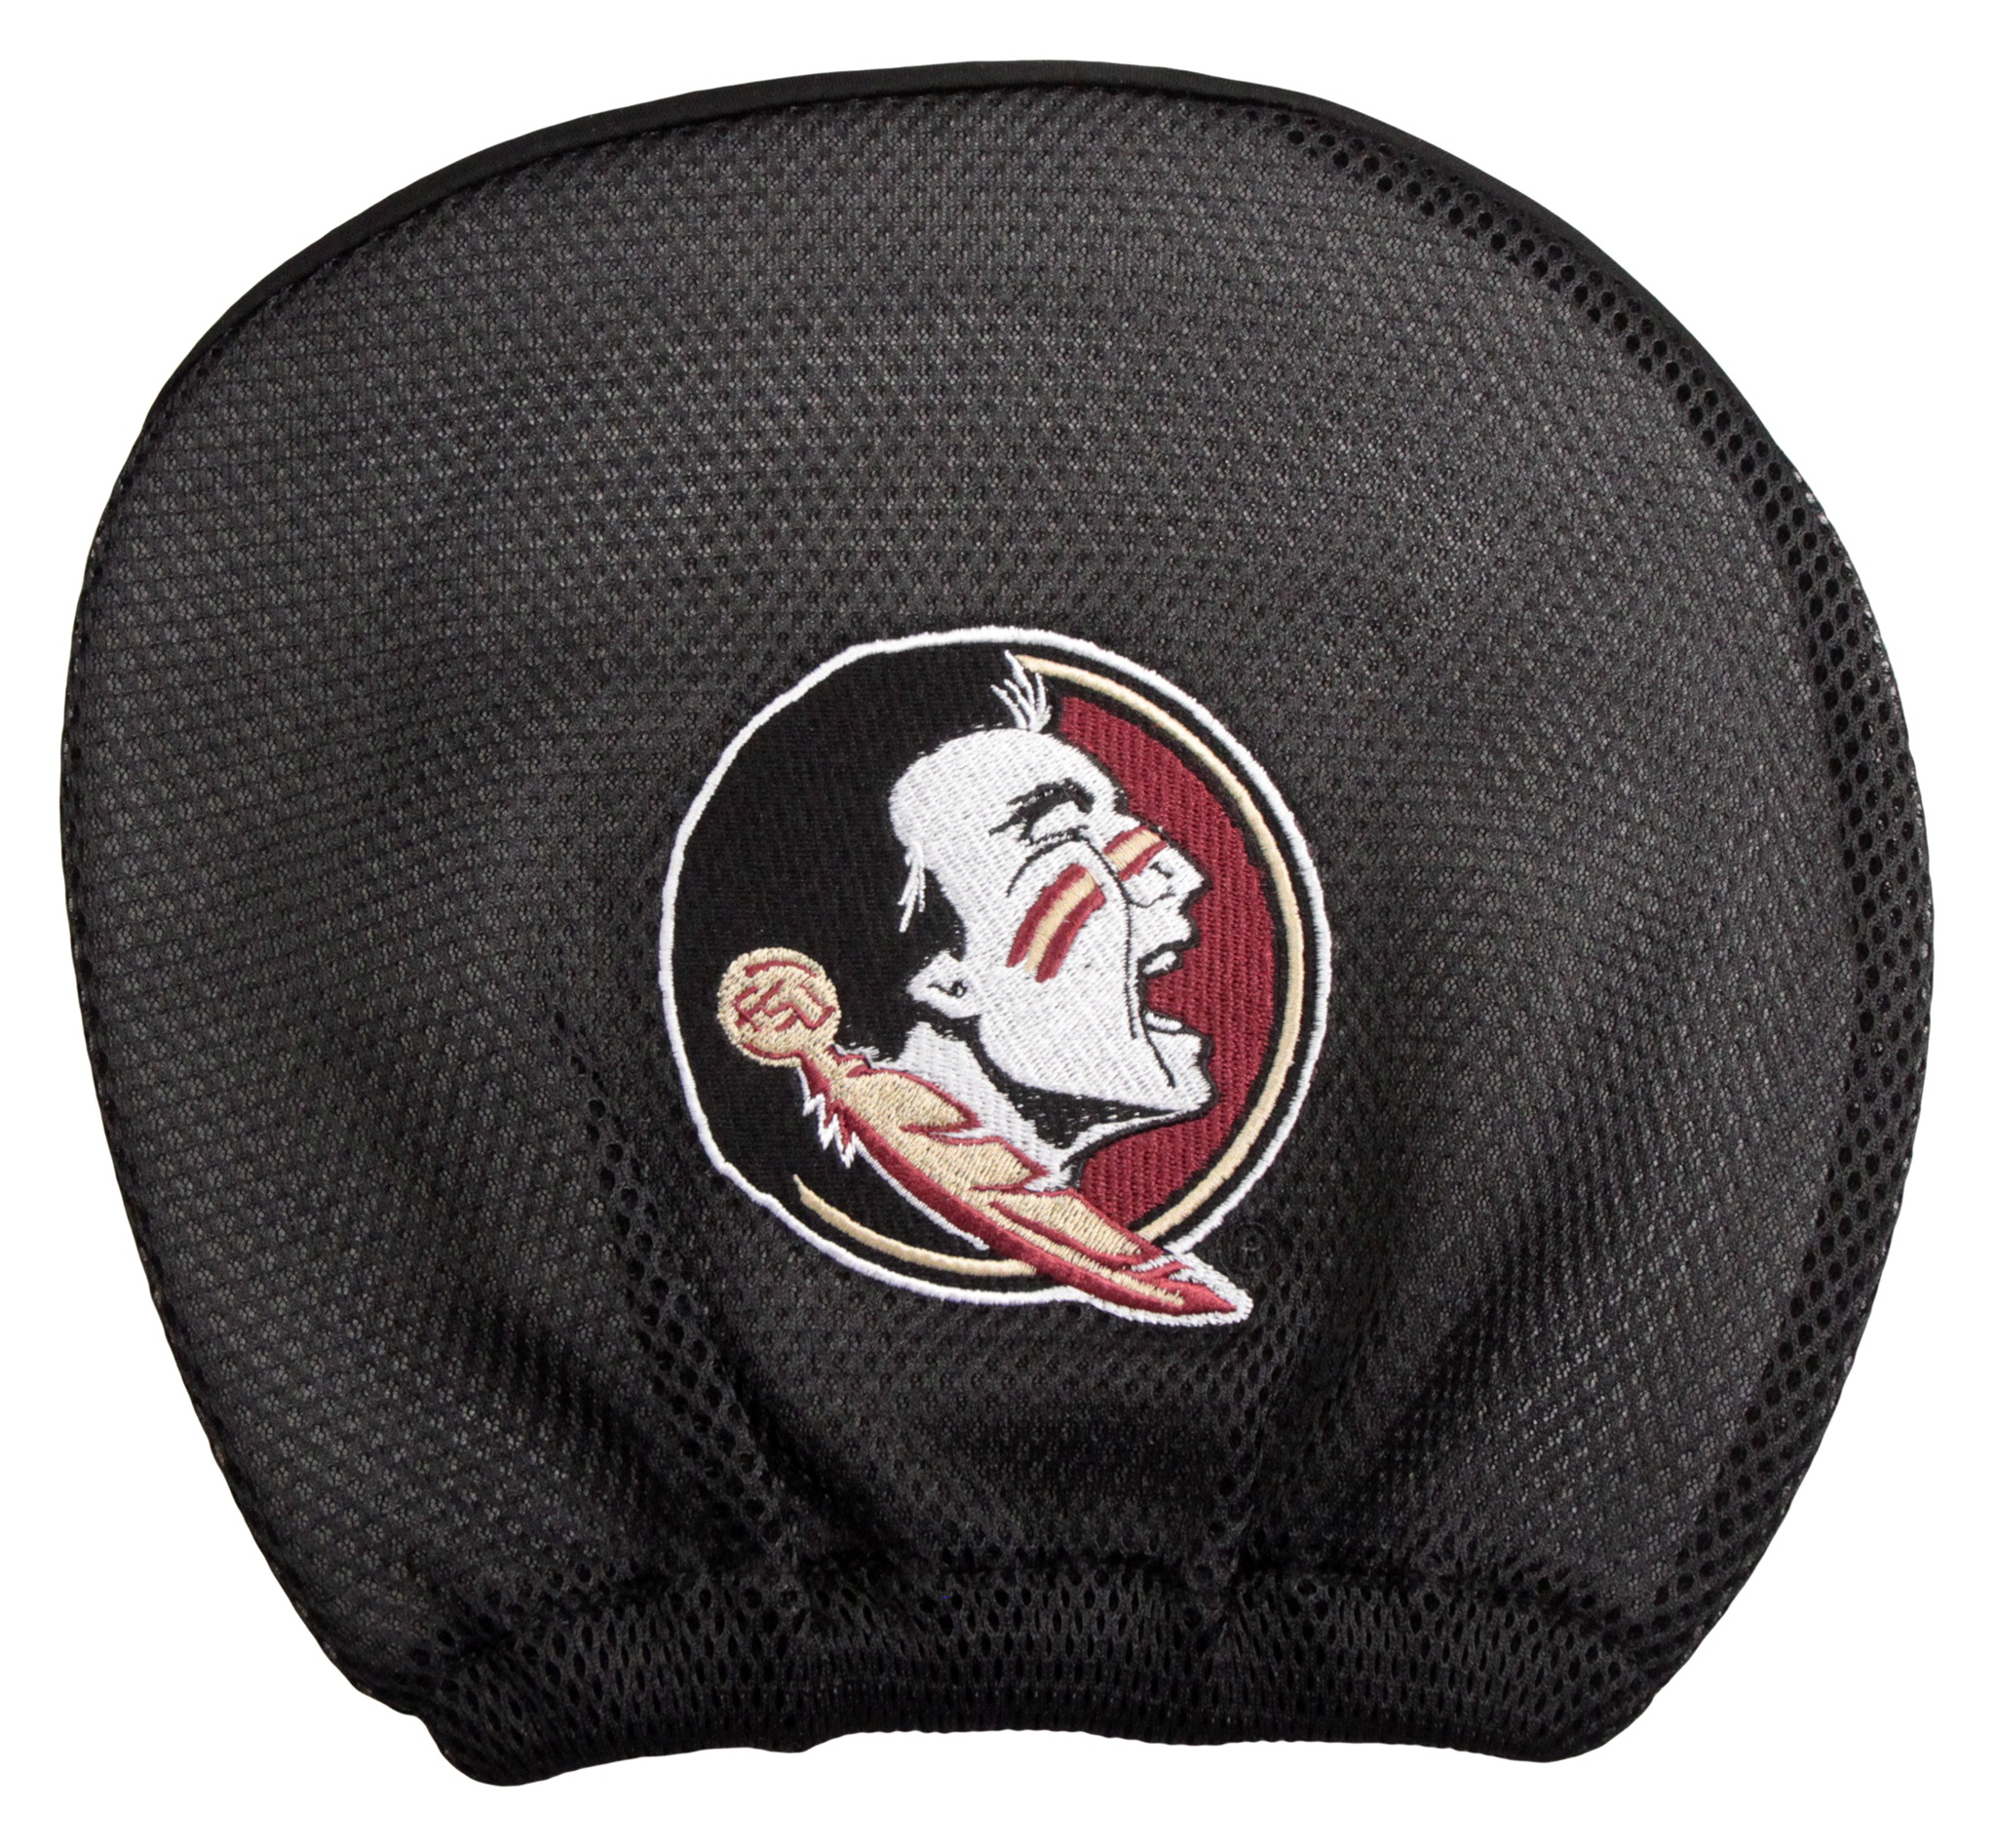 Florida State University Head Rest Cover (Set of 2)